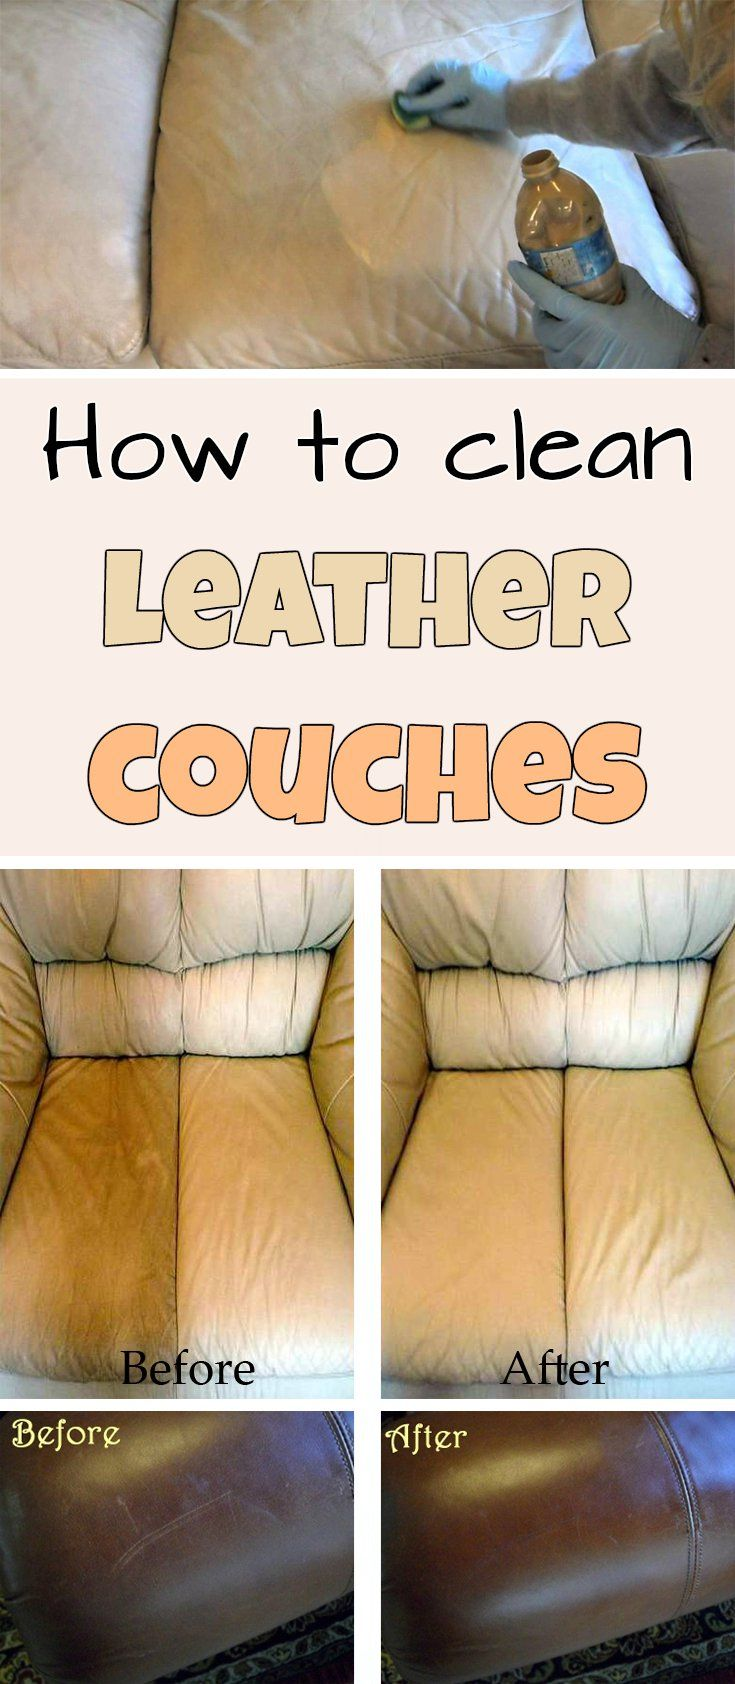 How To Clean Leather Couches With